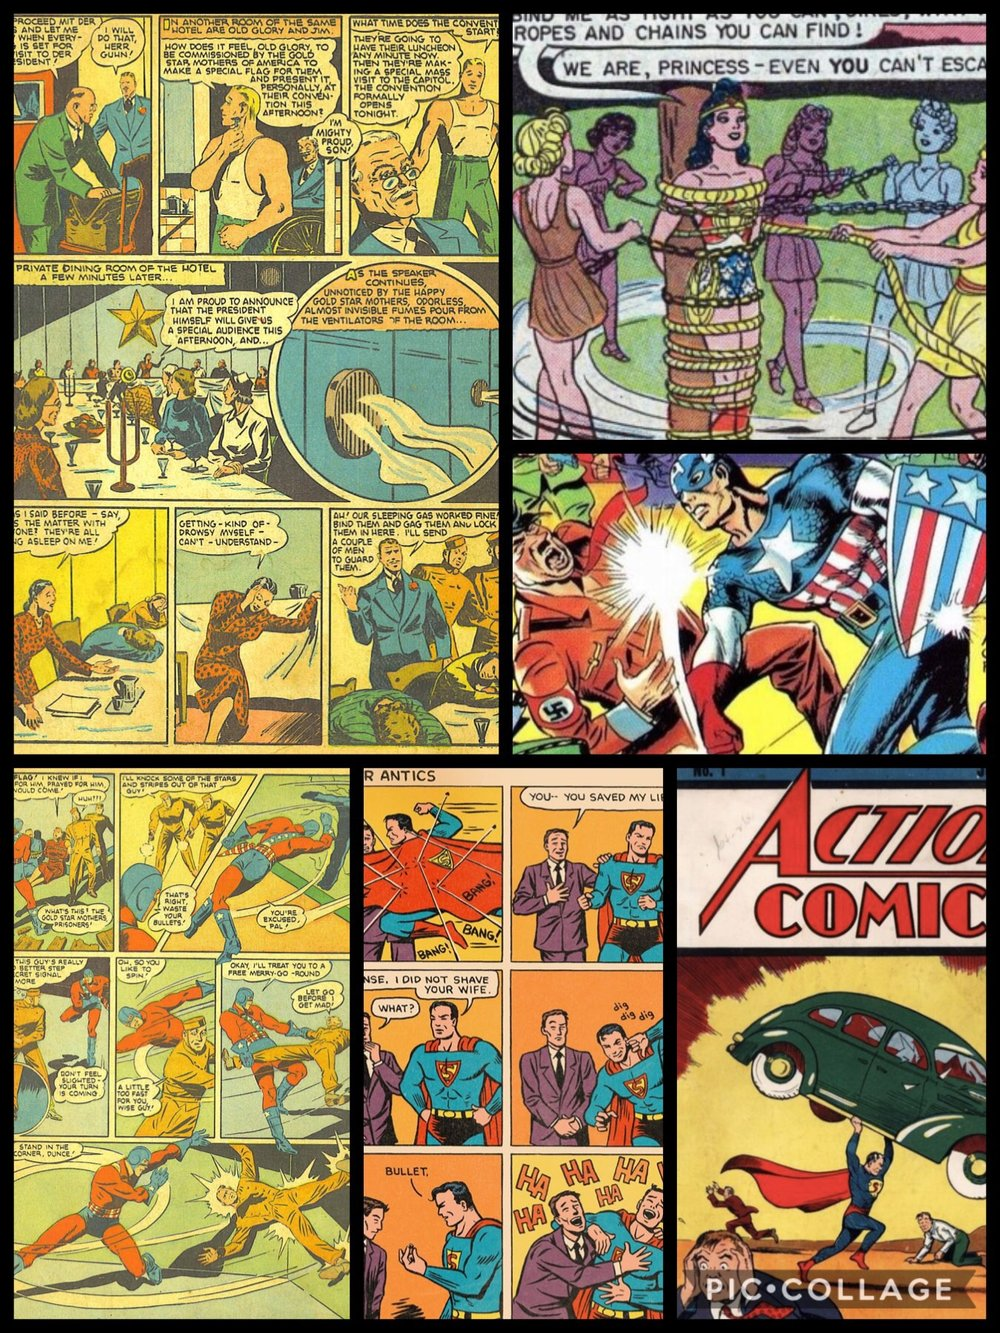 Examples of Golden Age comic book panels.